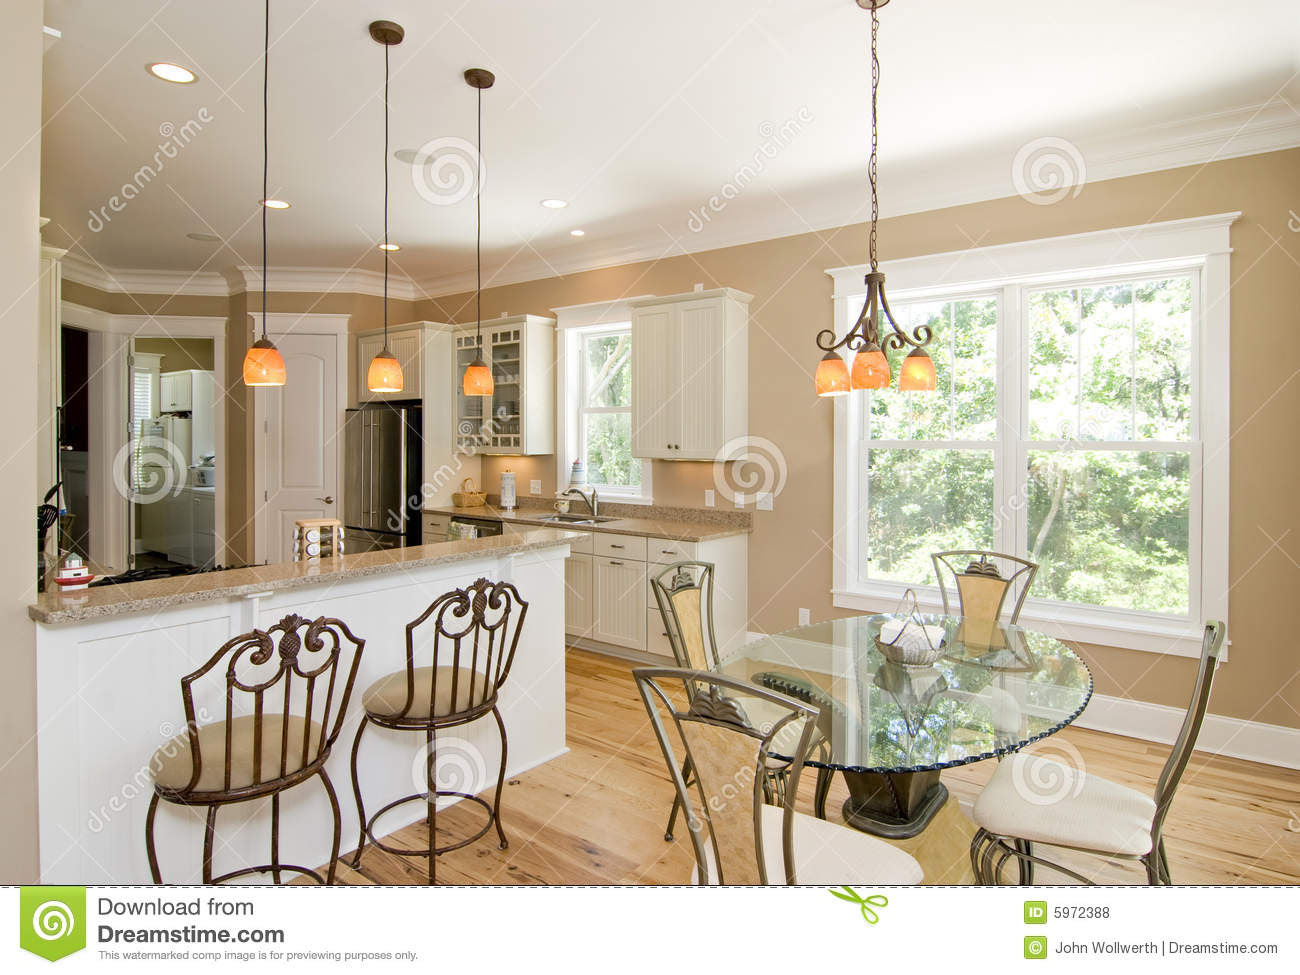 Upscale Kitchen And Dining Room Royalty Free Stock Photos - Image